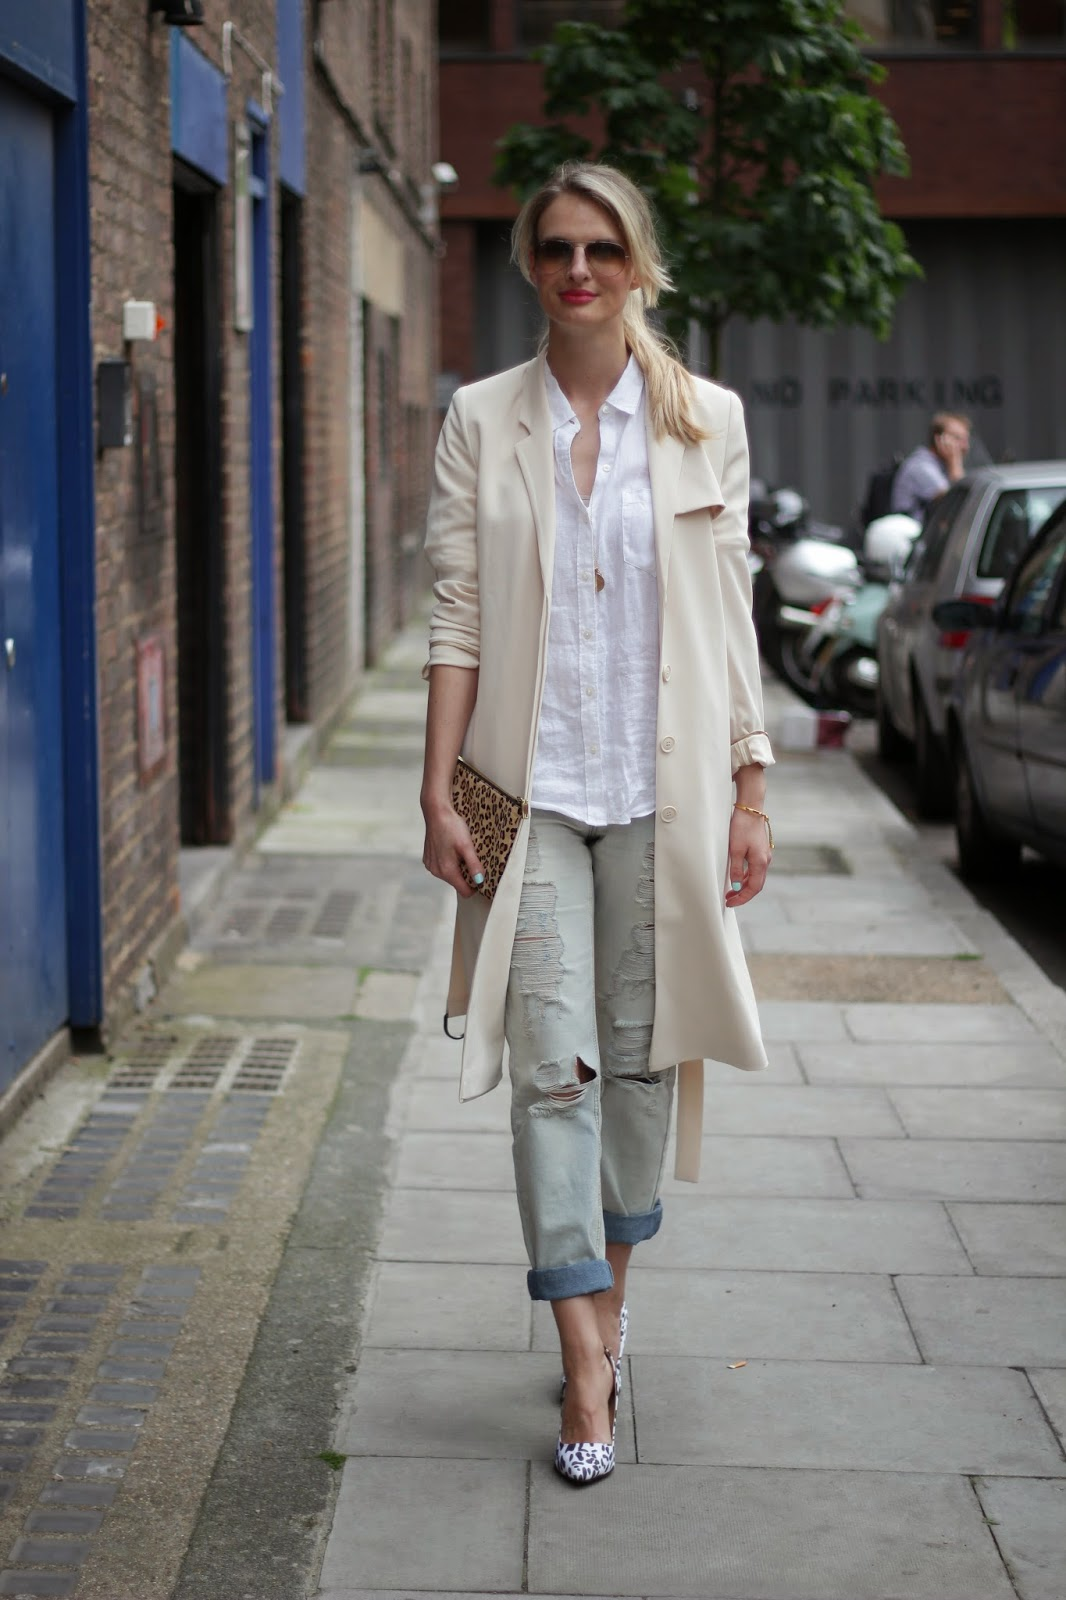 London street style, london blogger, lookbook, streetstyle, asos boyfriend jeans, asos shoes, asos heels, trench coat, &otherstories trench coat, , beige trench coat, duster coat, gap shirt